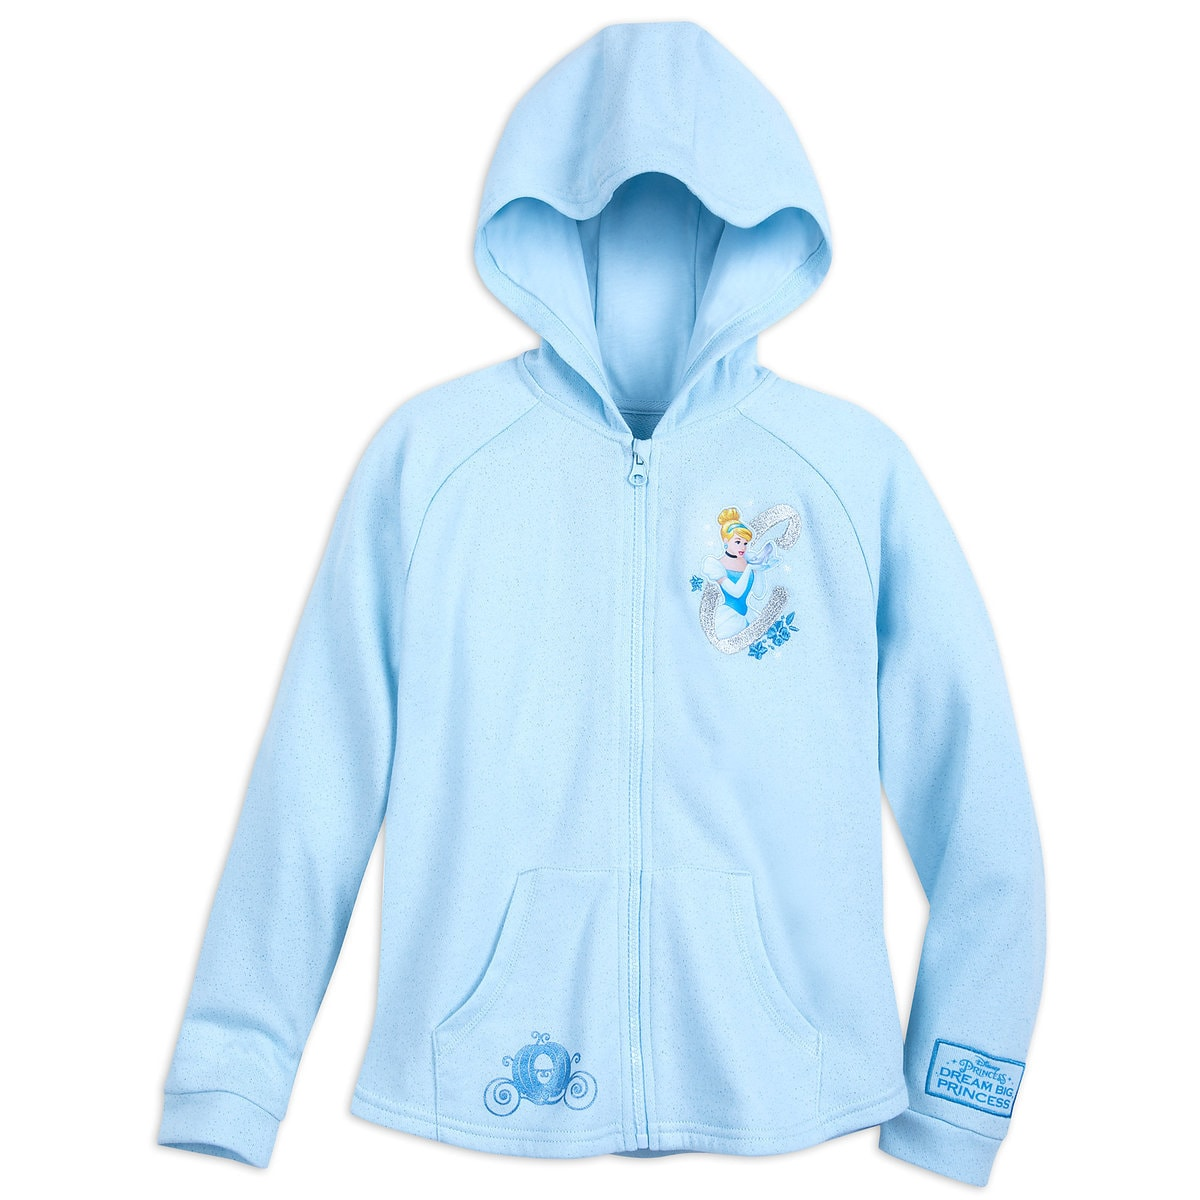 c1a659ea54a4 Product Image of Cinderella with Fantasyland Castle Hoodie for Girls   1